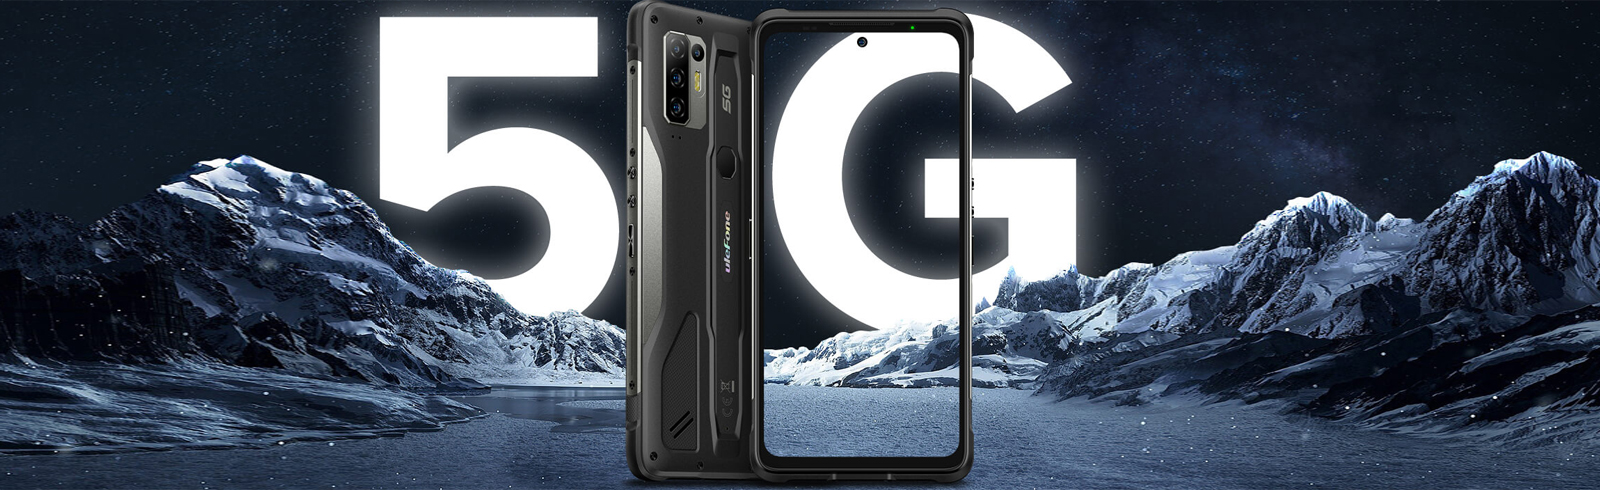 Ulefone Armor 10 goes official with Dimensity 800 chipset and 5G connectivity